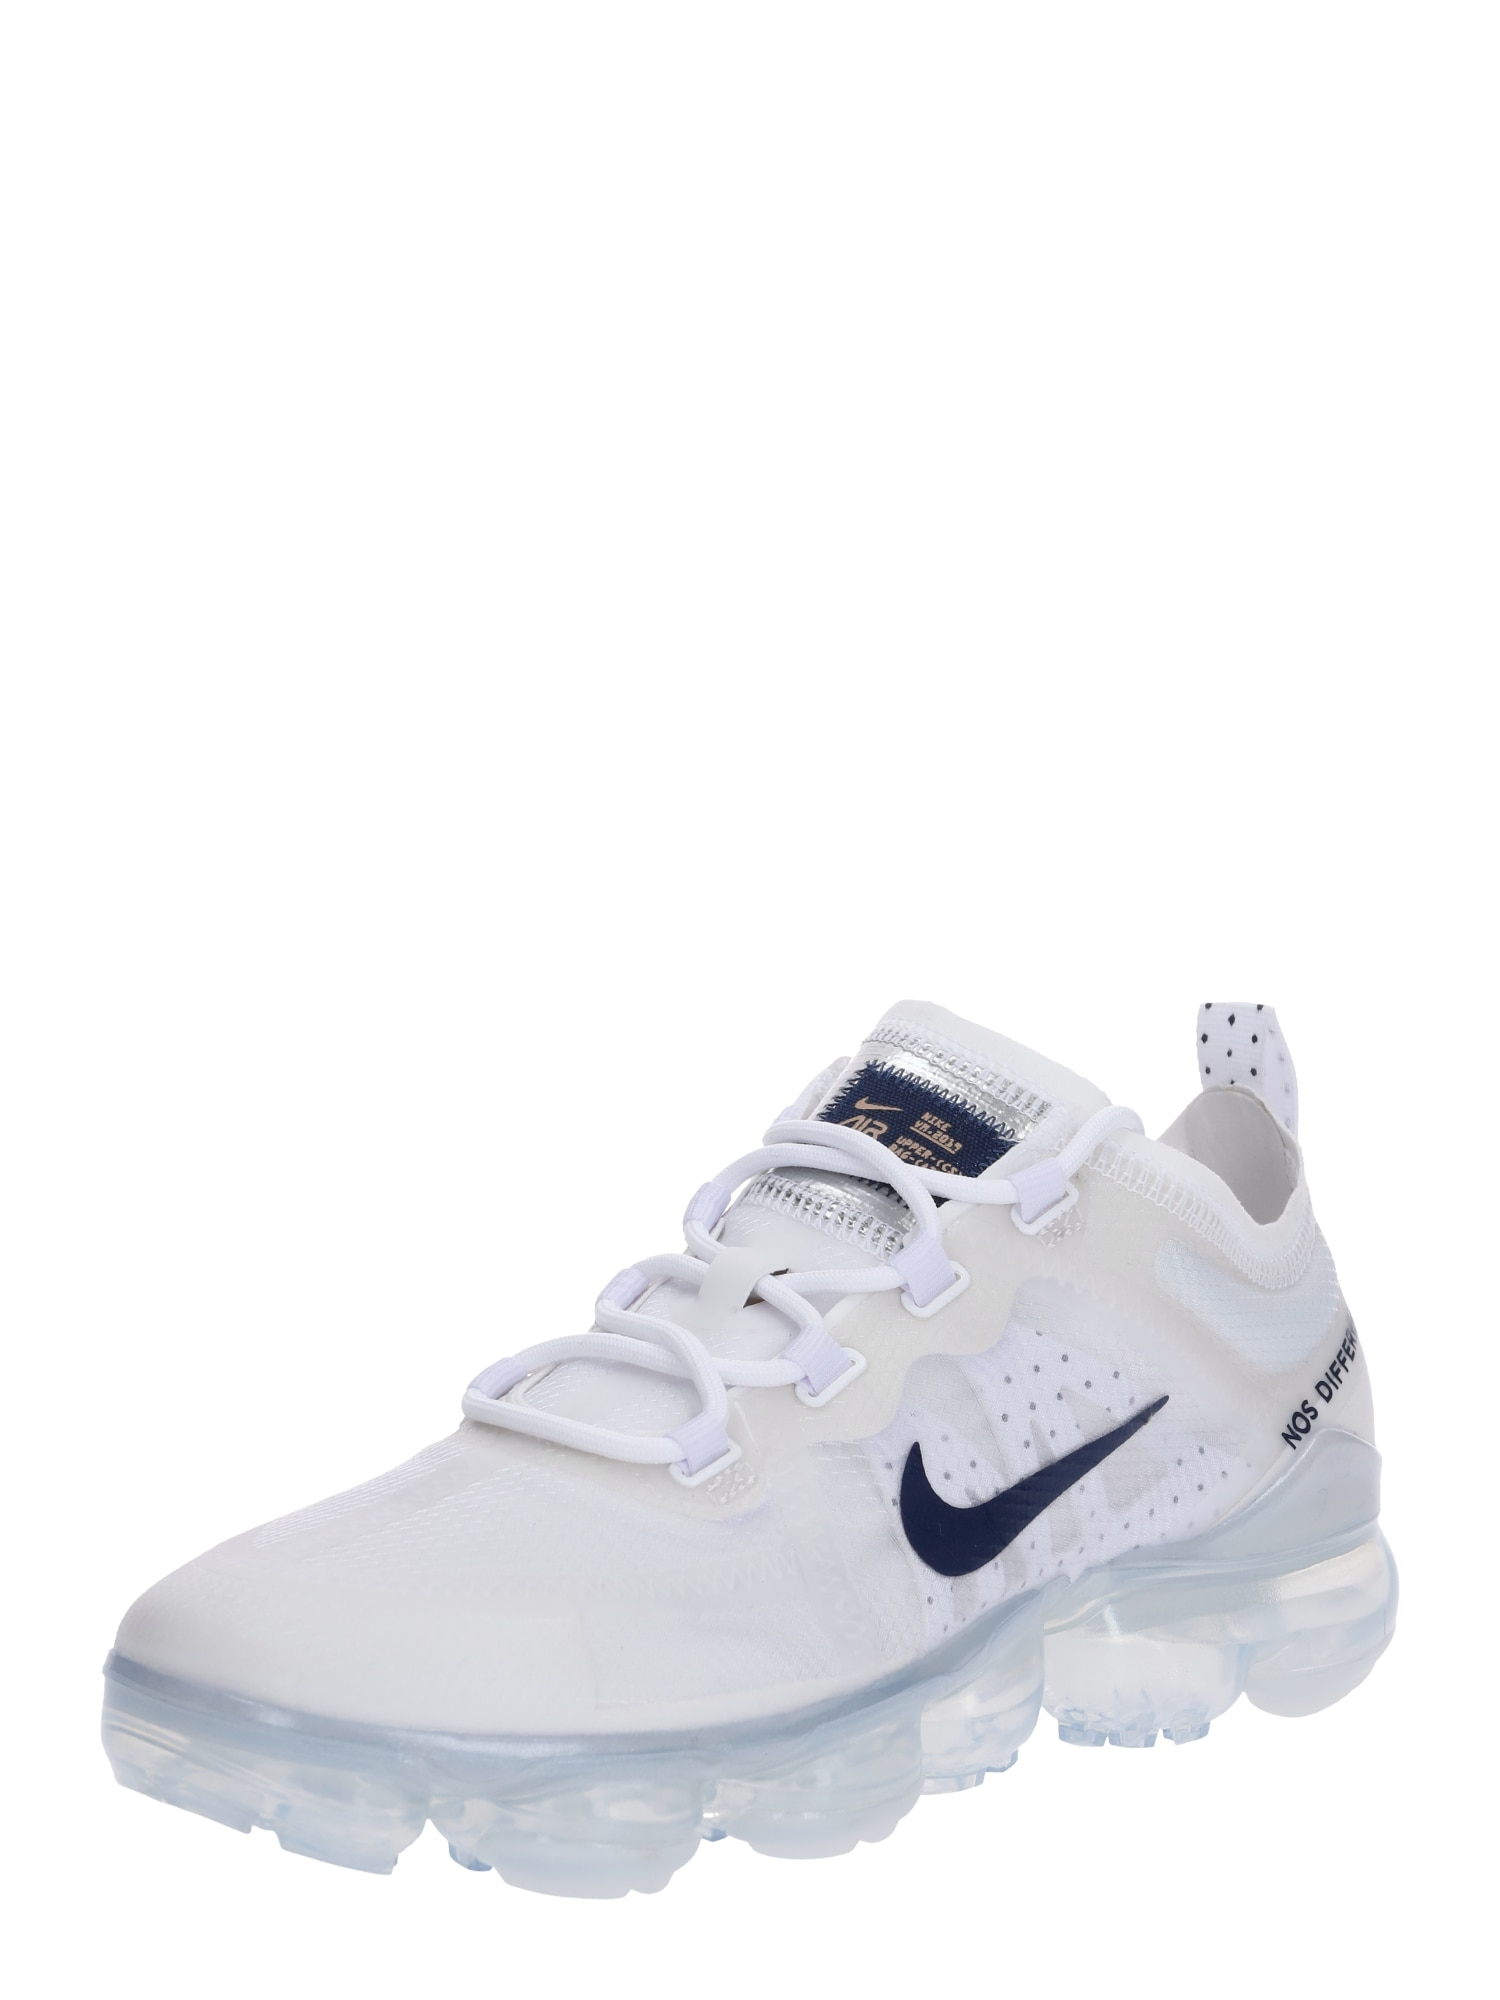 NIKE, Dames Loopschoen 'WMNS VAPORMAX 2019 AS', wit